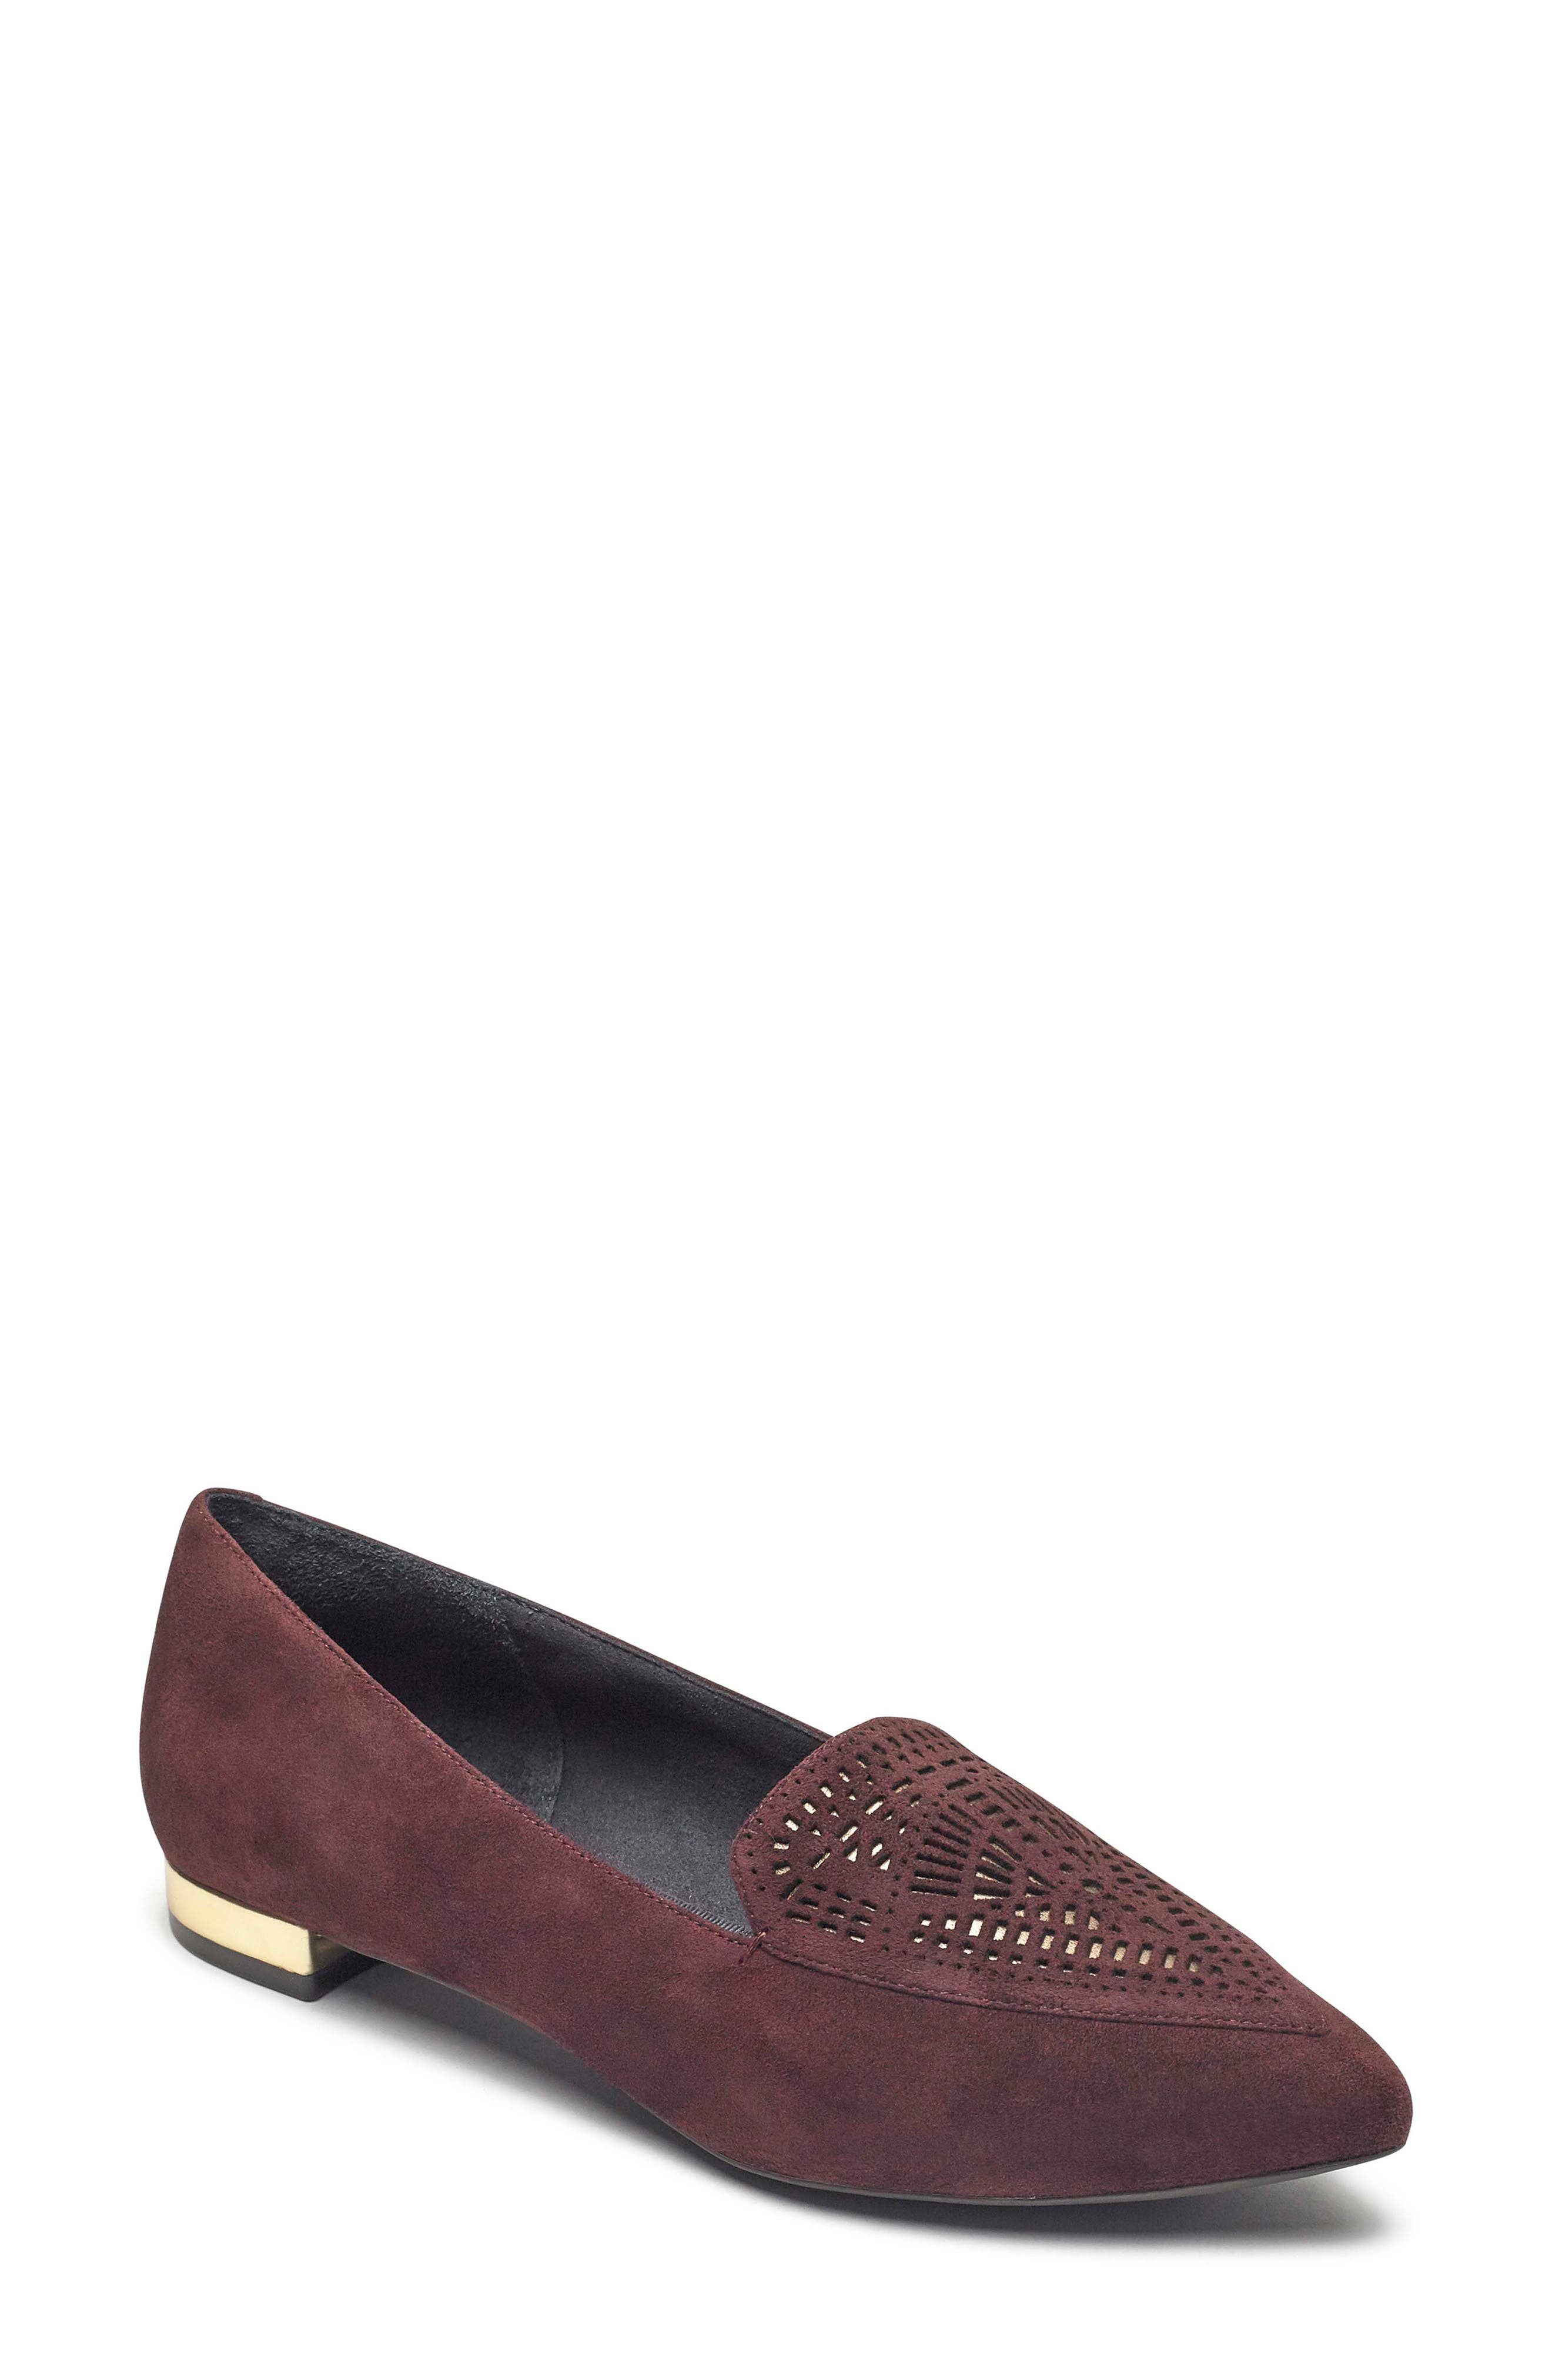 Total Motion Adelyn Loafer,                         Main,                         color, MAROON